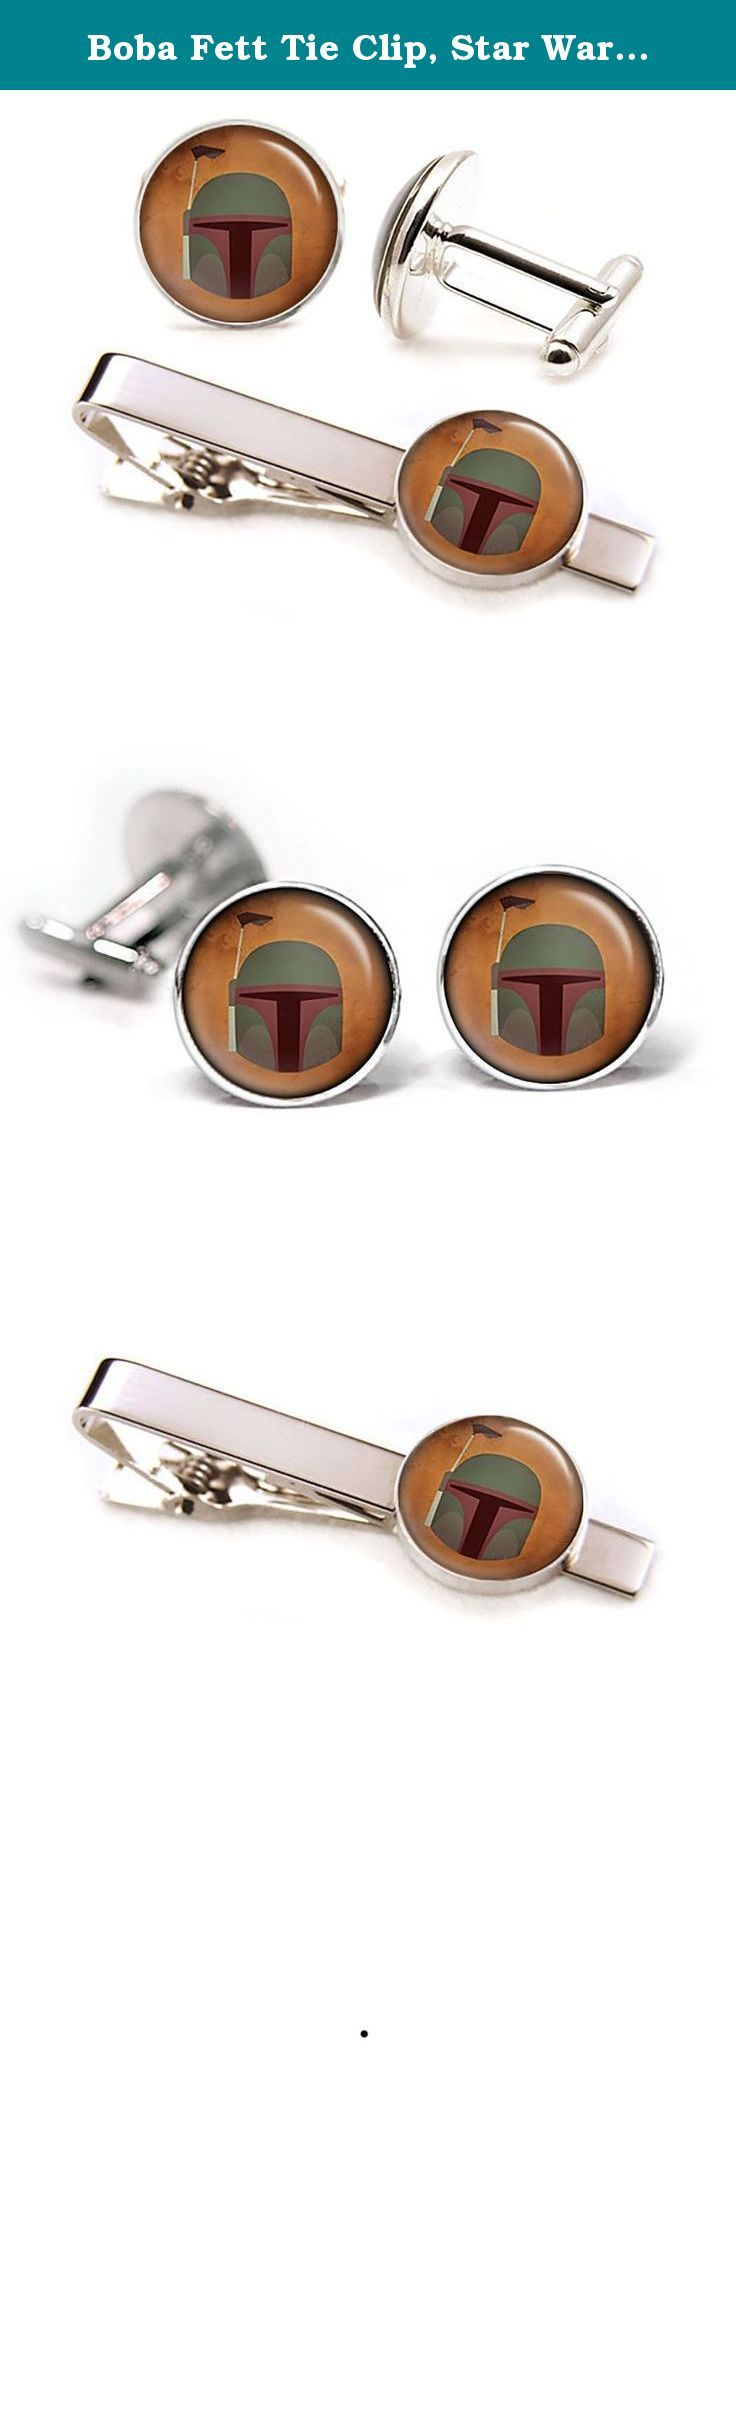 """Boba Fett Tie Clip, Star Wars Cufflinks, Jedi Jewelry, Darth Vader, Stormtrooper stormtroopers Death Star, Star Wars Wedding Party Gifts, Groomsmen Gift. -10% Off- purchases of two or more items from my amazon shop. For more cufflinks and tie clips check out my other listings by clicking the """"SharedImagination"""" link at the top of the listing above the product title. These cufflinks and tie clip feature a high quality image underneath glass. The glass gives the image a great shine and..."""